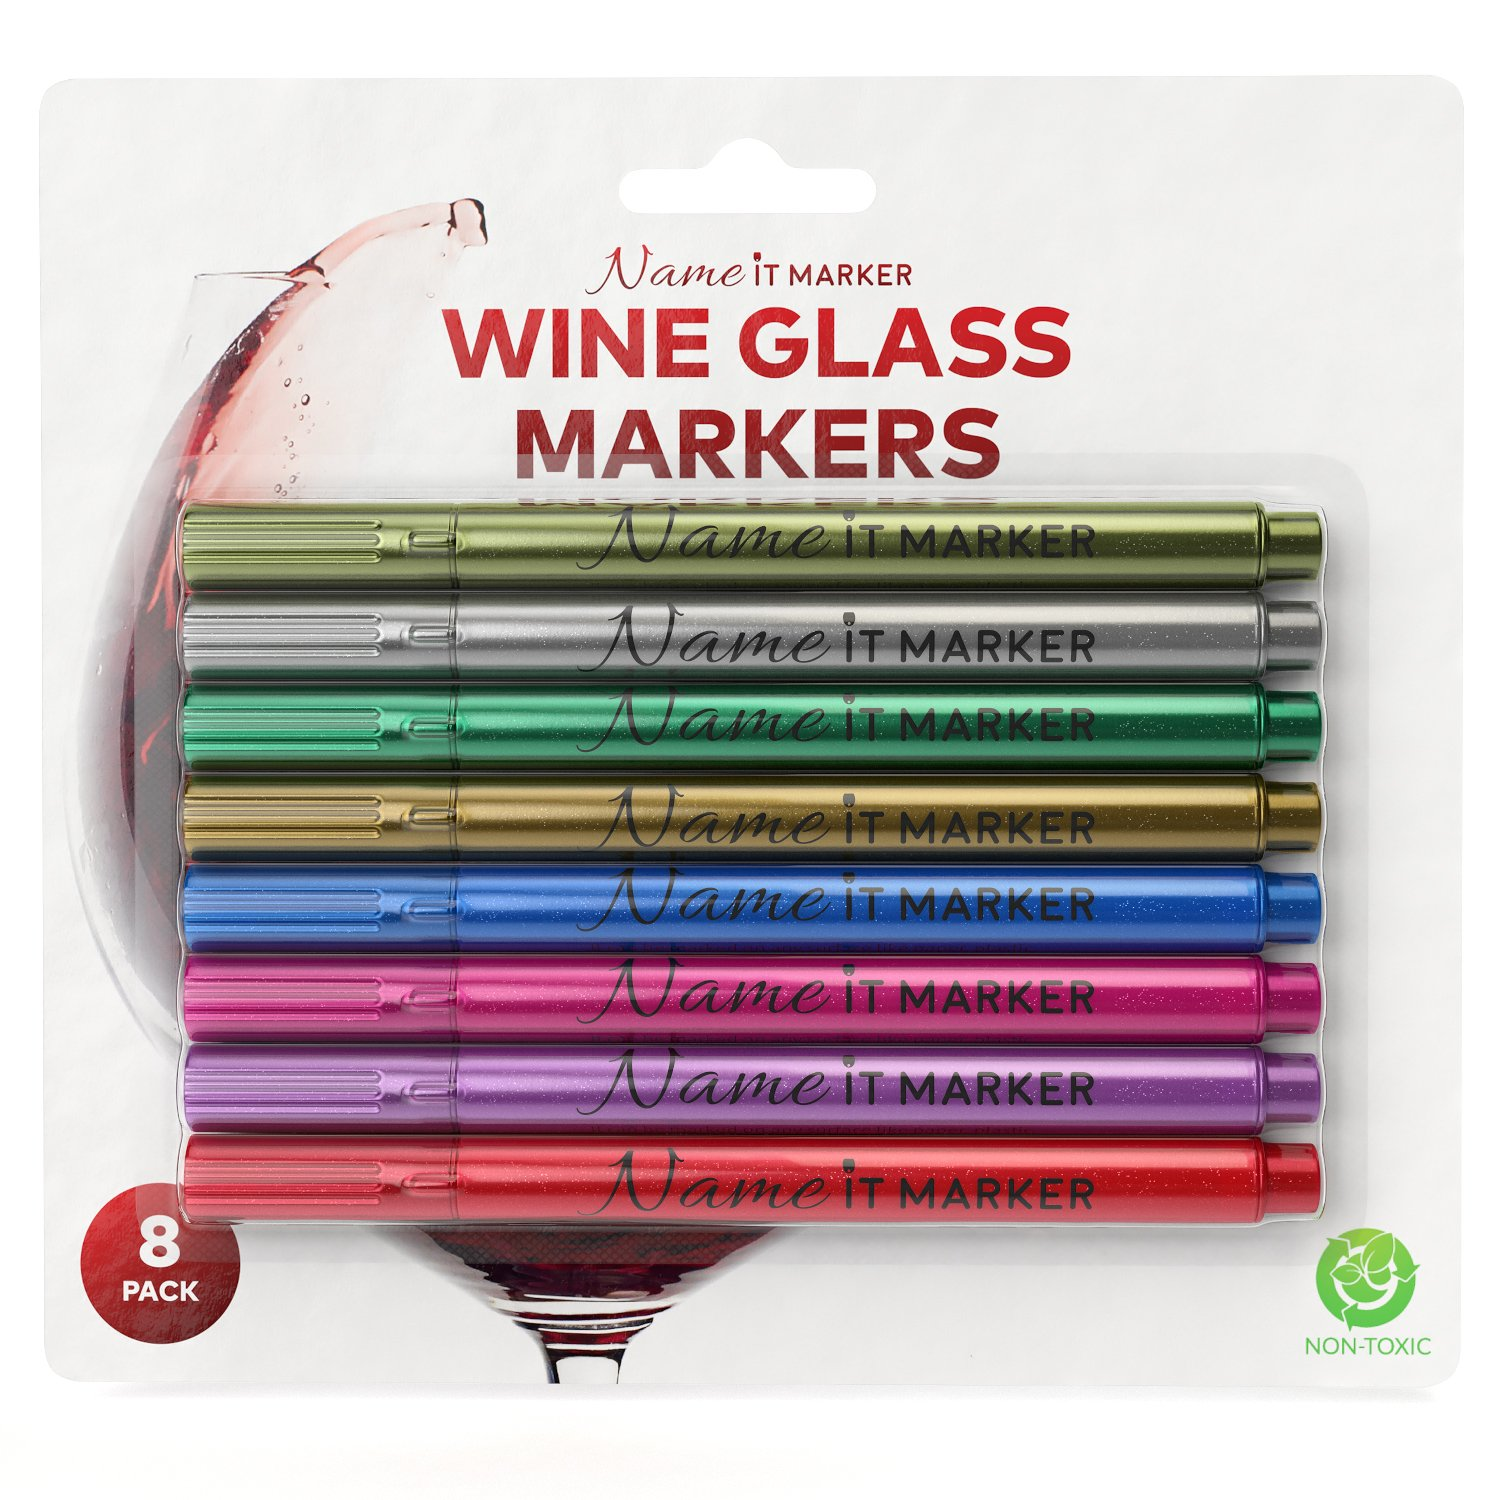 Name It Marker, Metallic Wine Glass Pens, Food Grade Ink in Fun Colors! Personalize Your Drinks Like Wine Charms , Set of 8